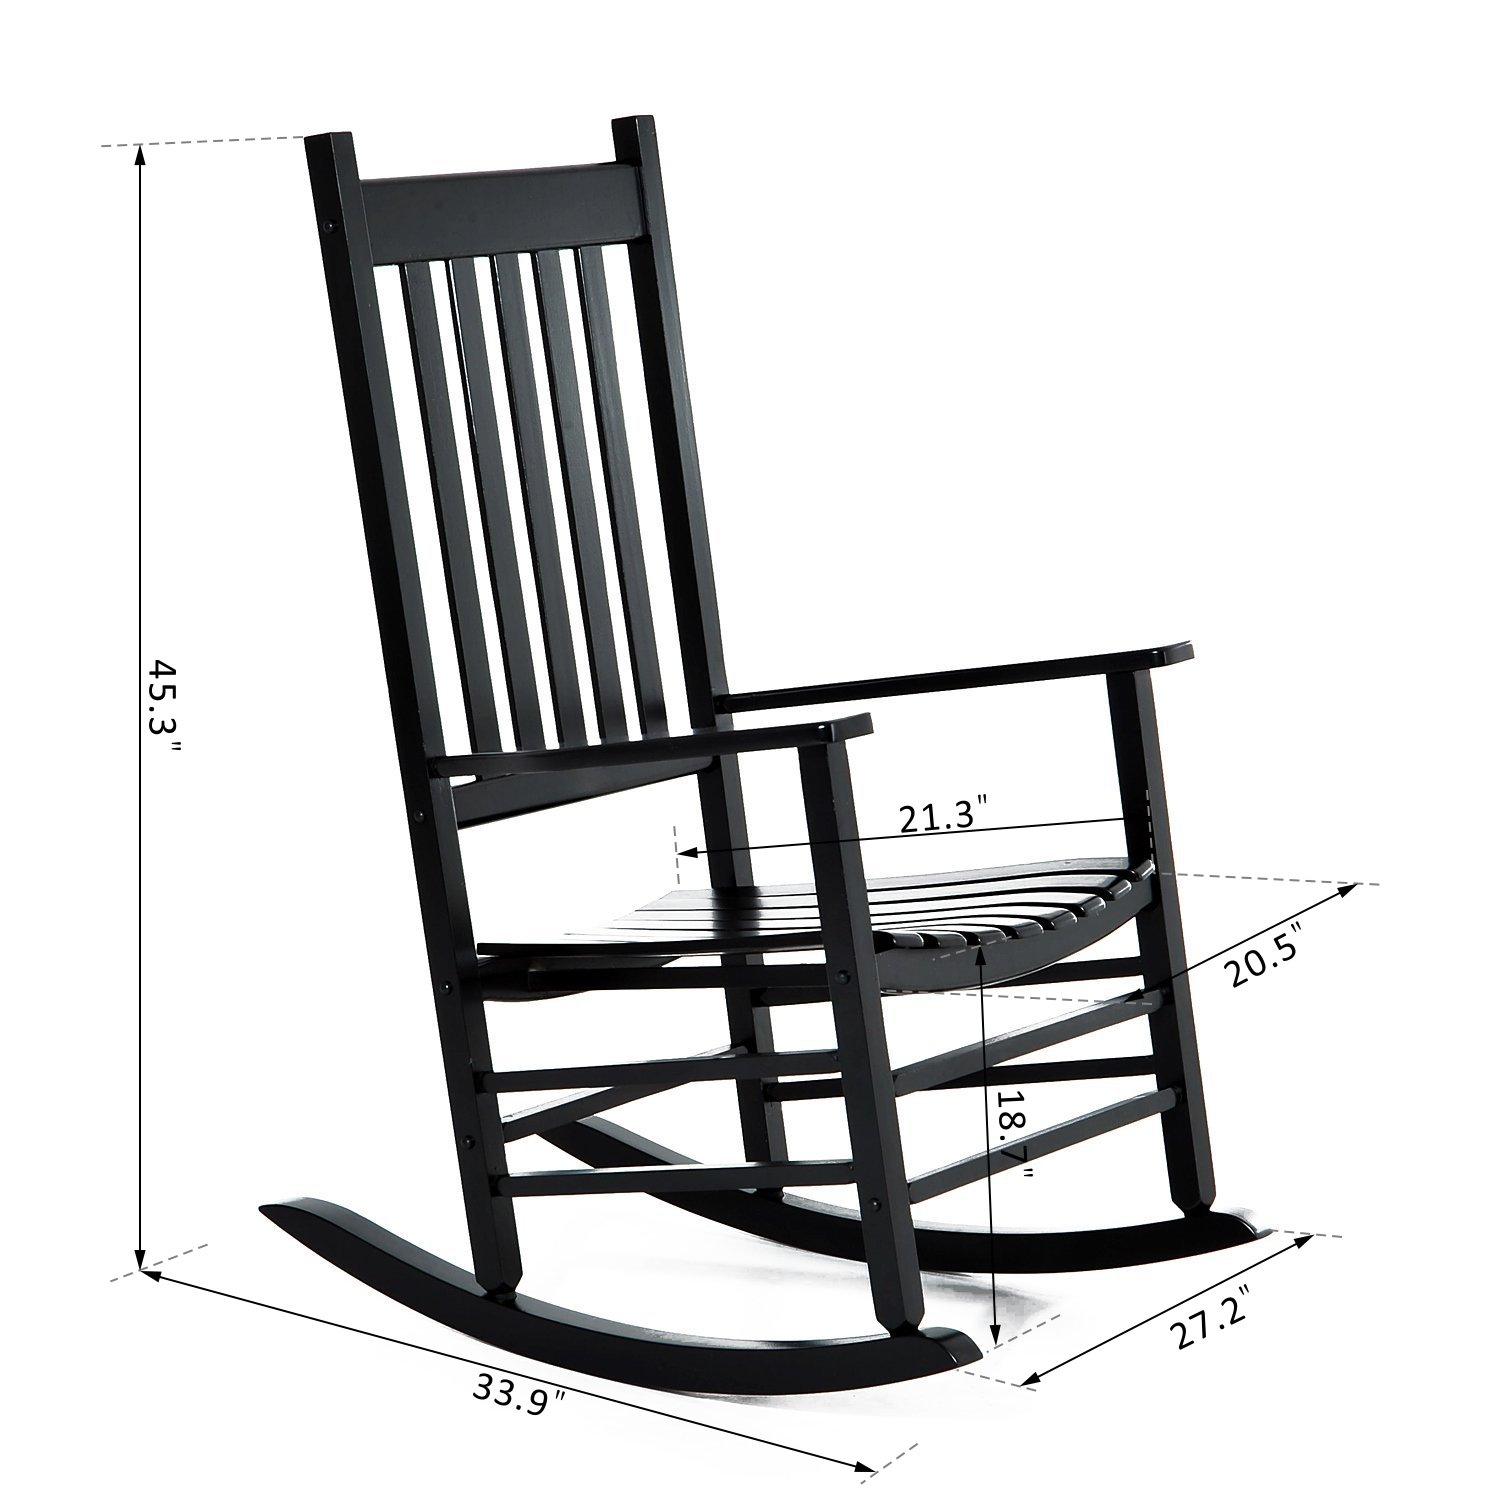 Outsunny Porch Rocking Chair - Outdoor Patio Wooden Rocker - Black by Outsunny (Image #7)